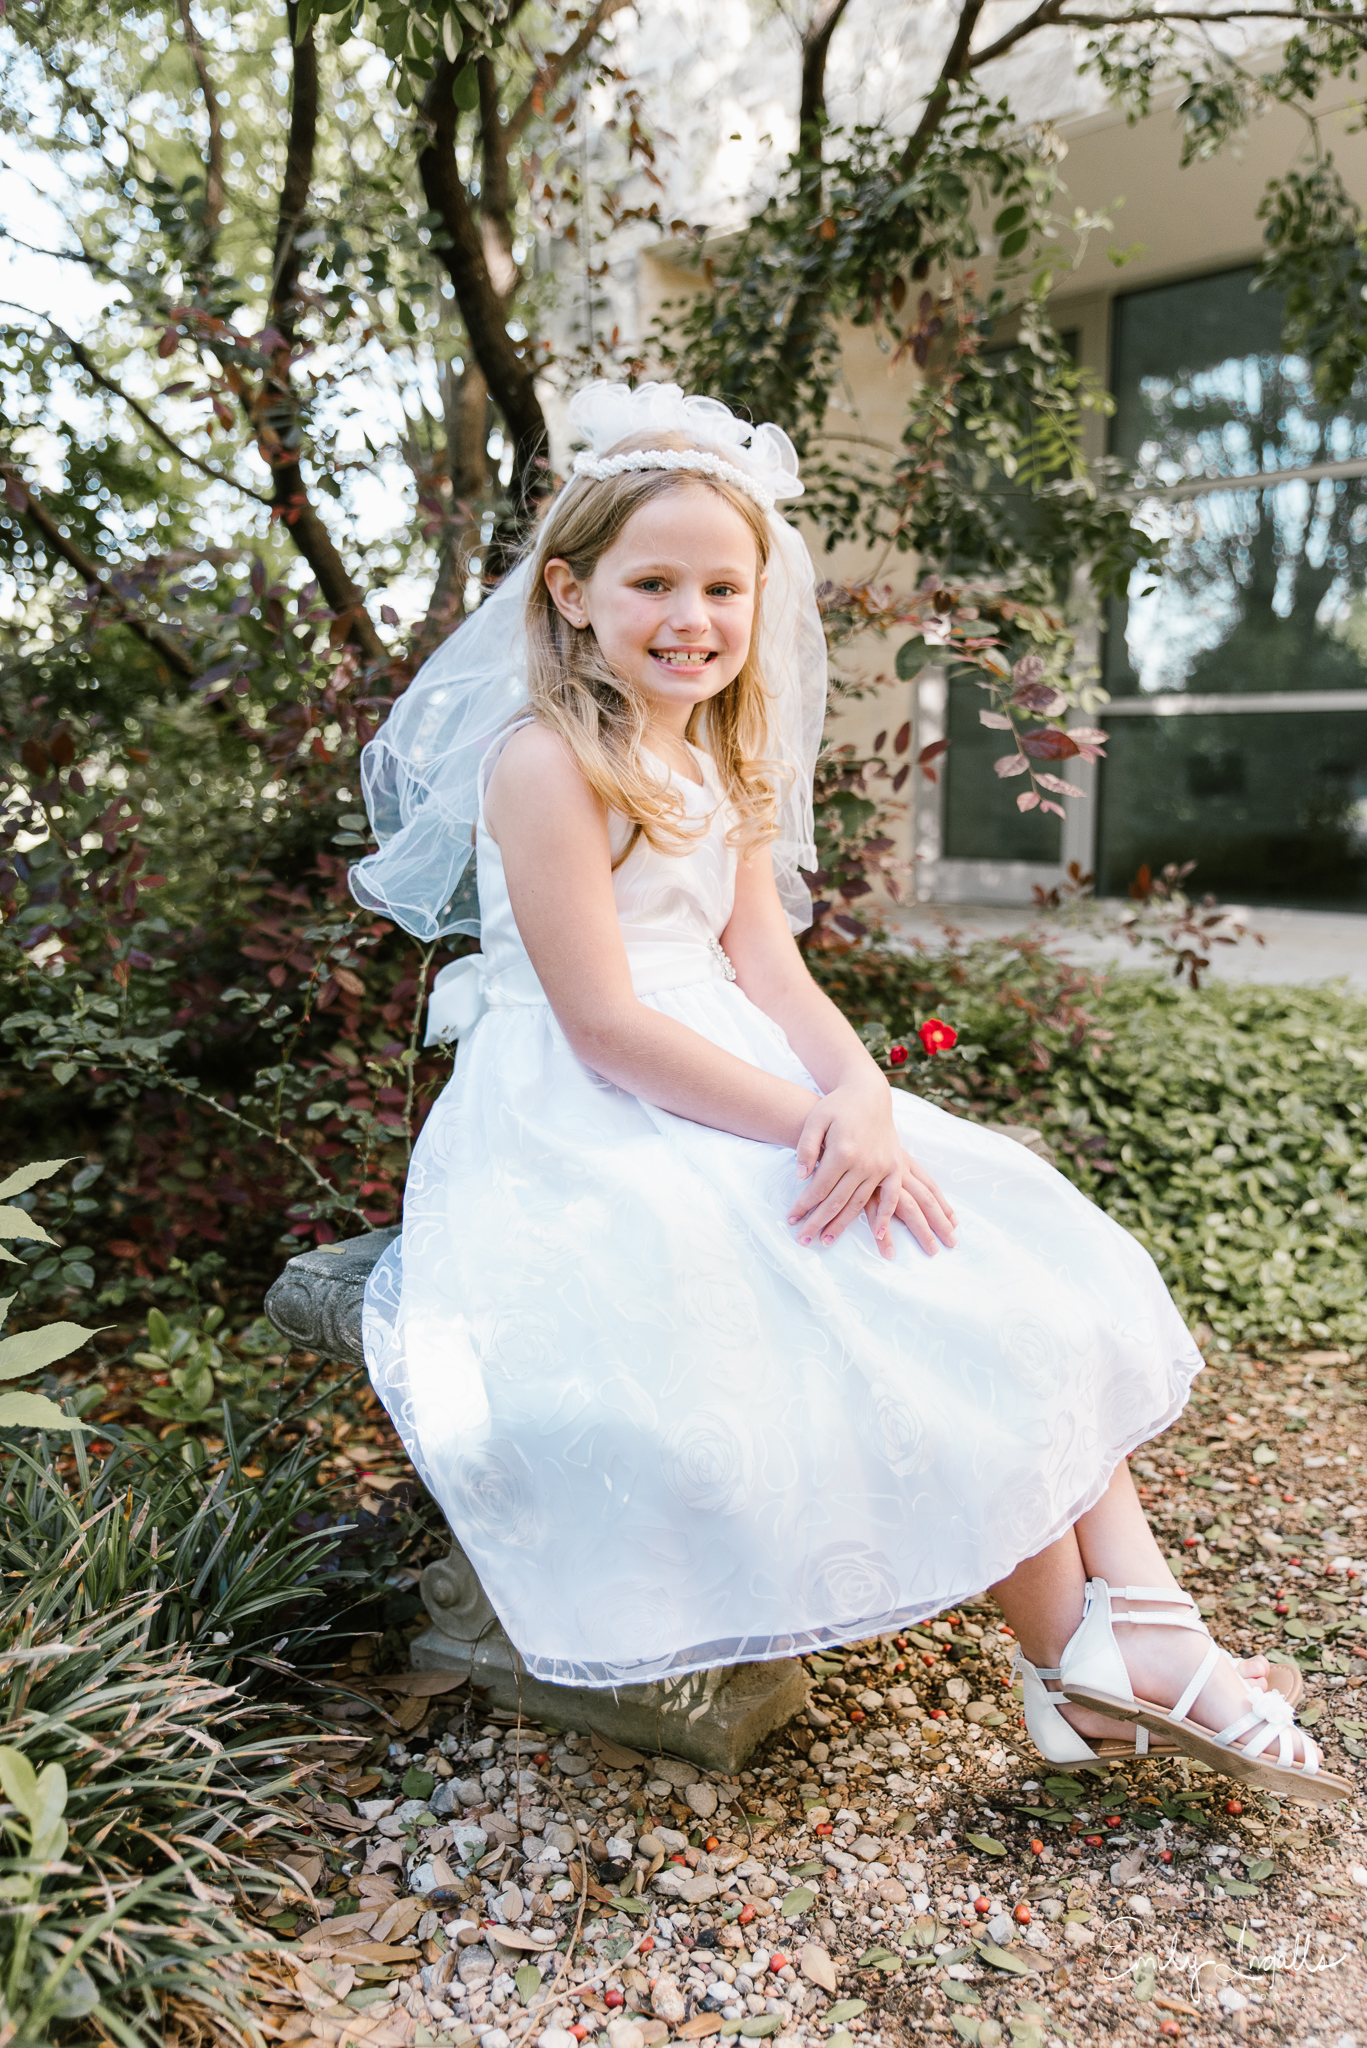 First Communion Catholic Photographer_Round Rock Photographer_Emily Ingalls Photography_Austin Photographer_Pflugerville Photographer_Georgetown Photographer.jpg